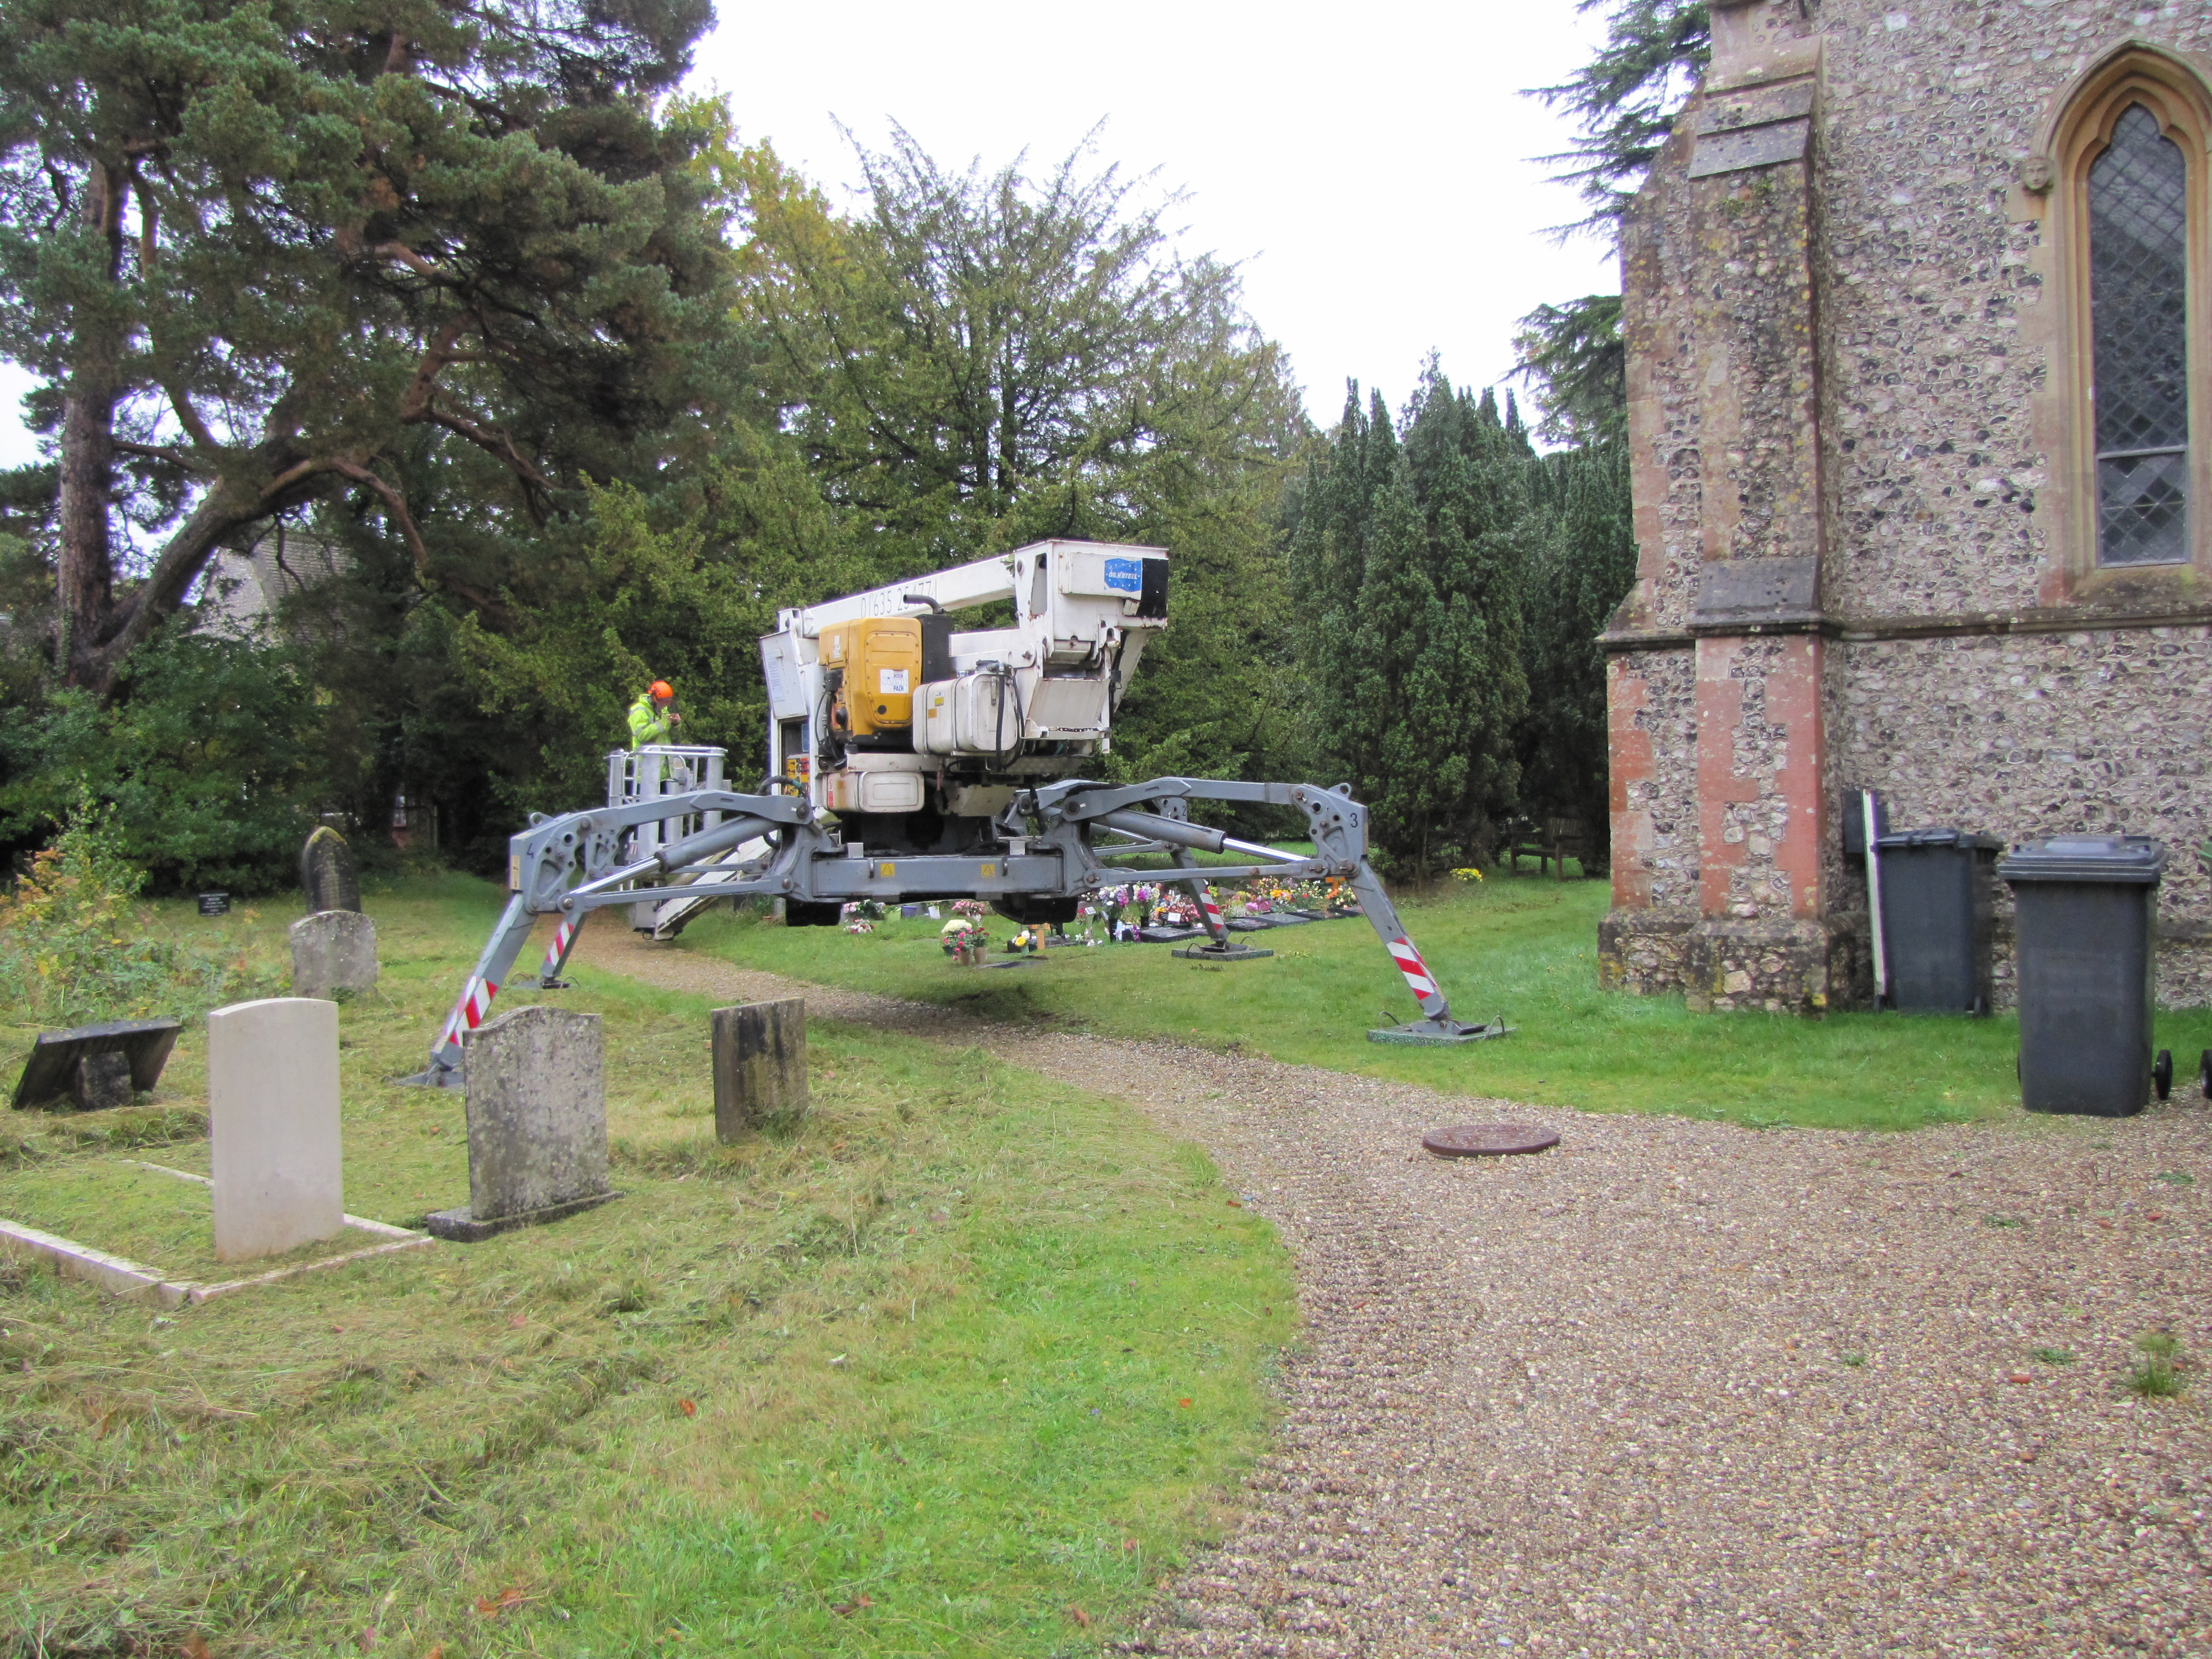 Cherry picker ready for roof inspection